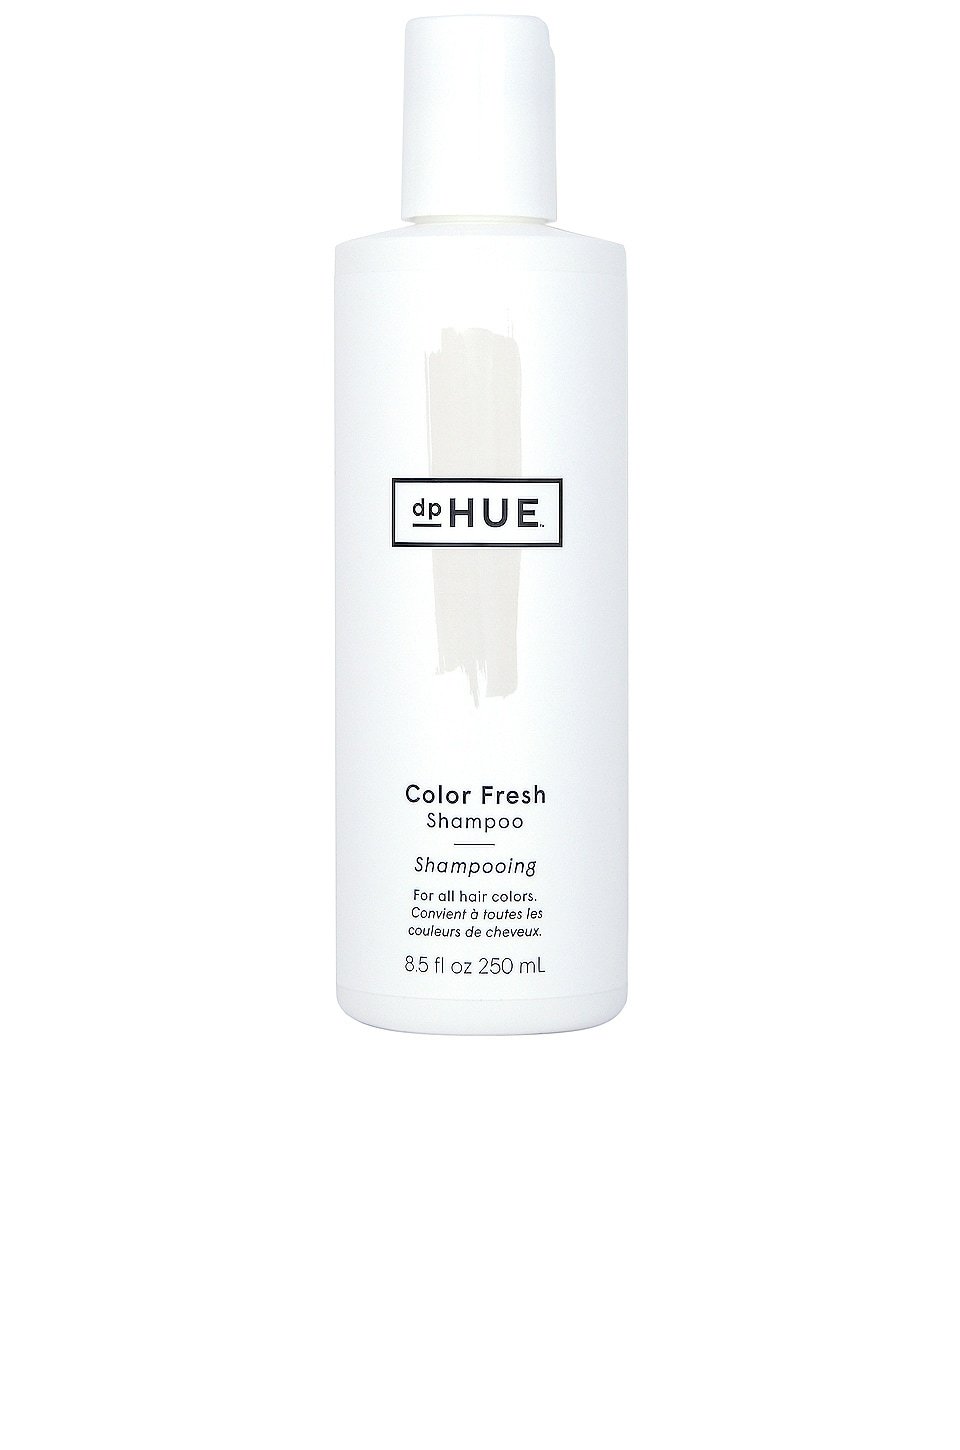 dpHUE Color Fresh Shampoo